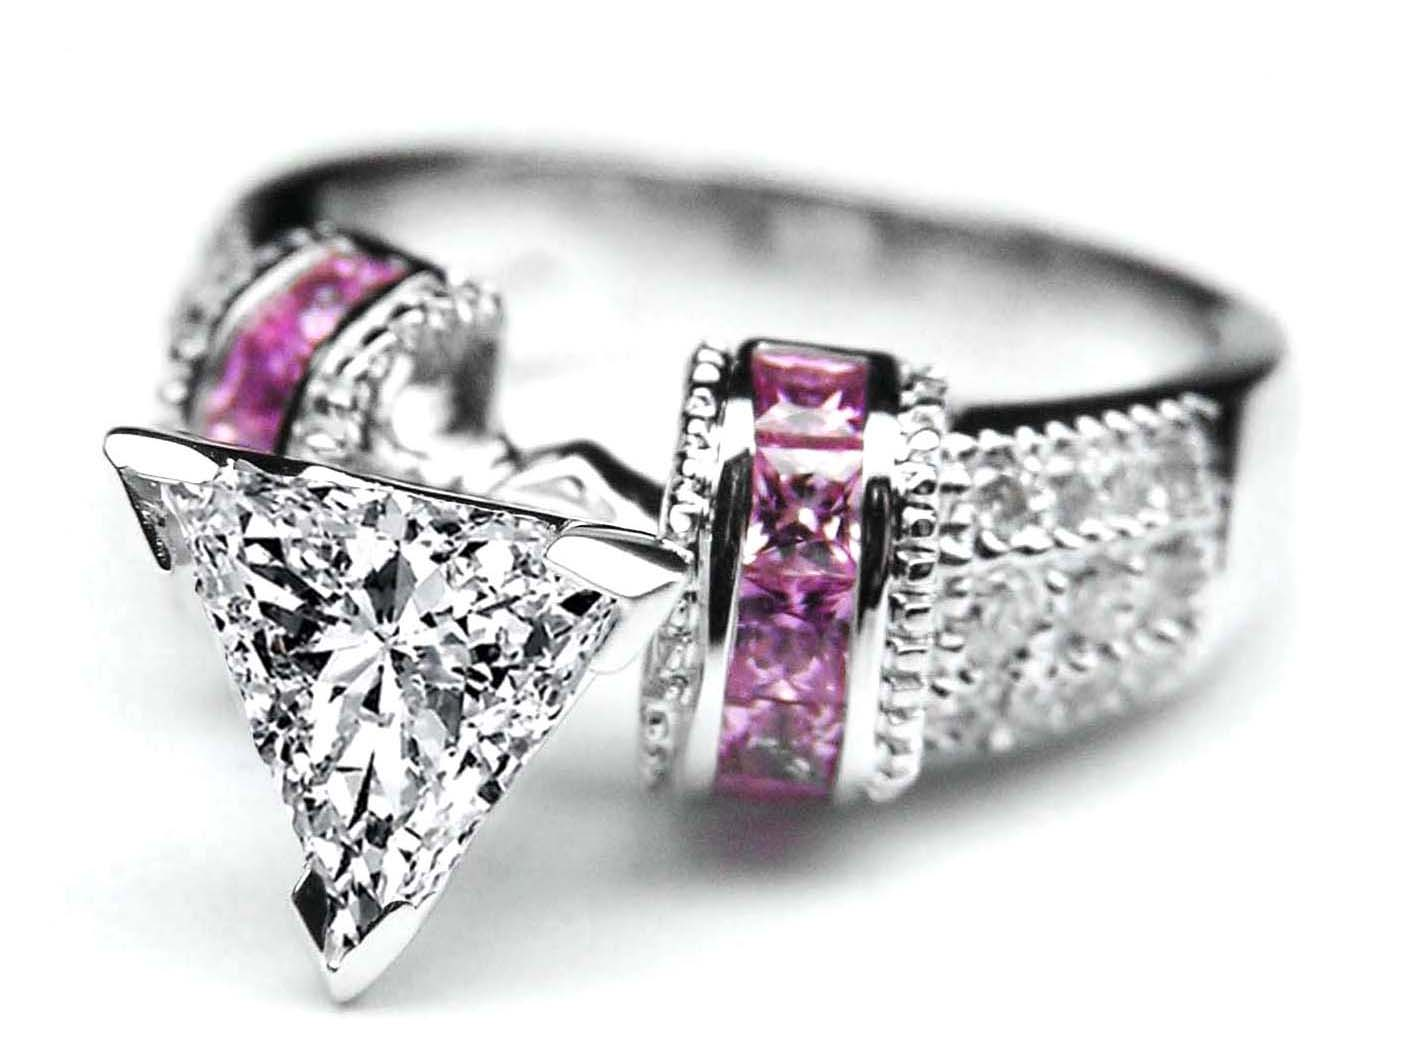 pink sapphire engagement rings from mdc diamonds nyc. Black Bedroom Furniture Sets. Home Design Ideas